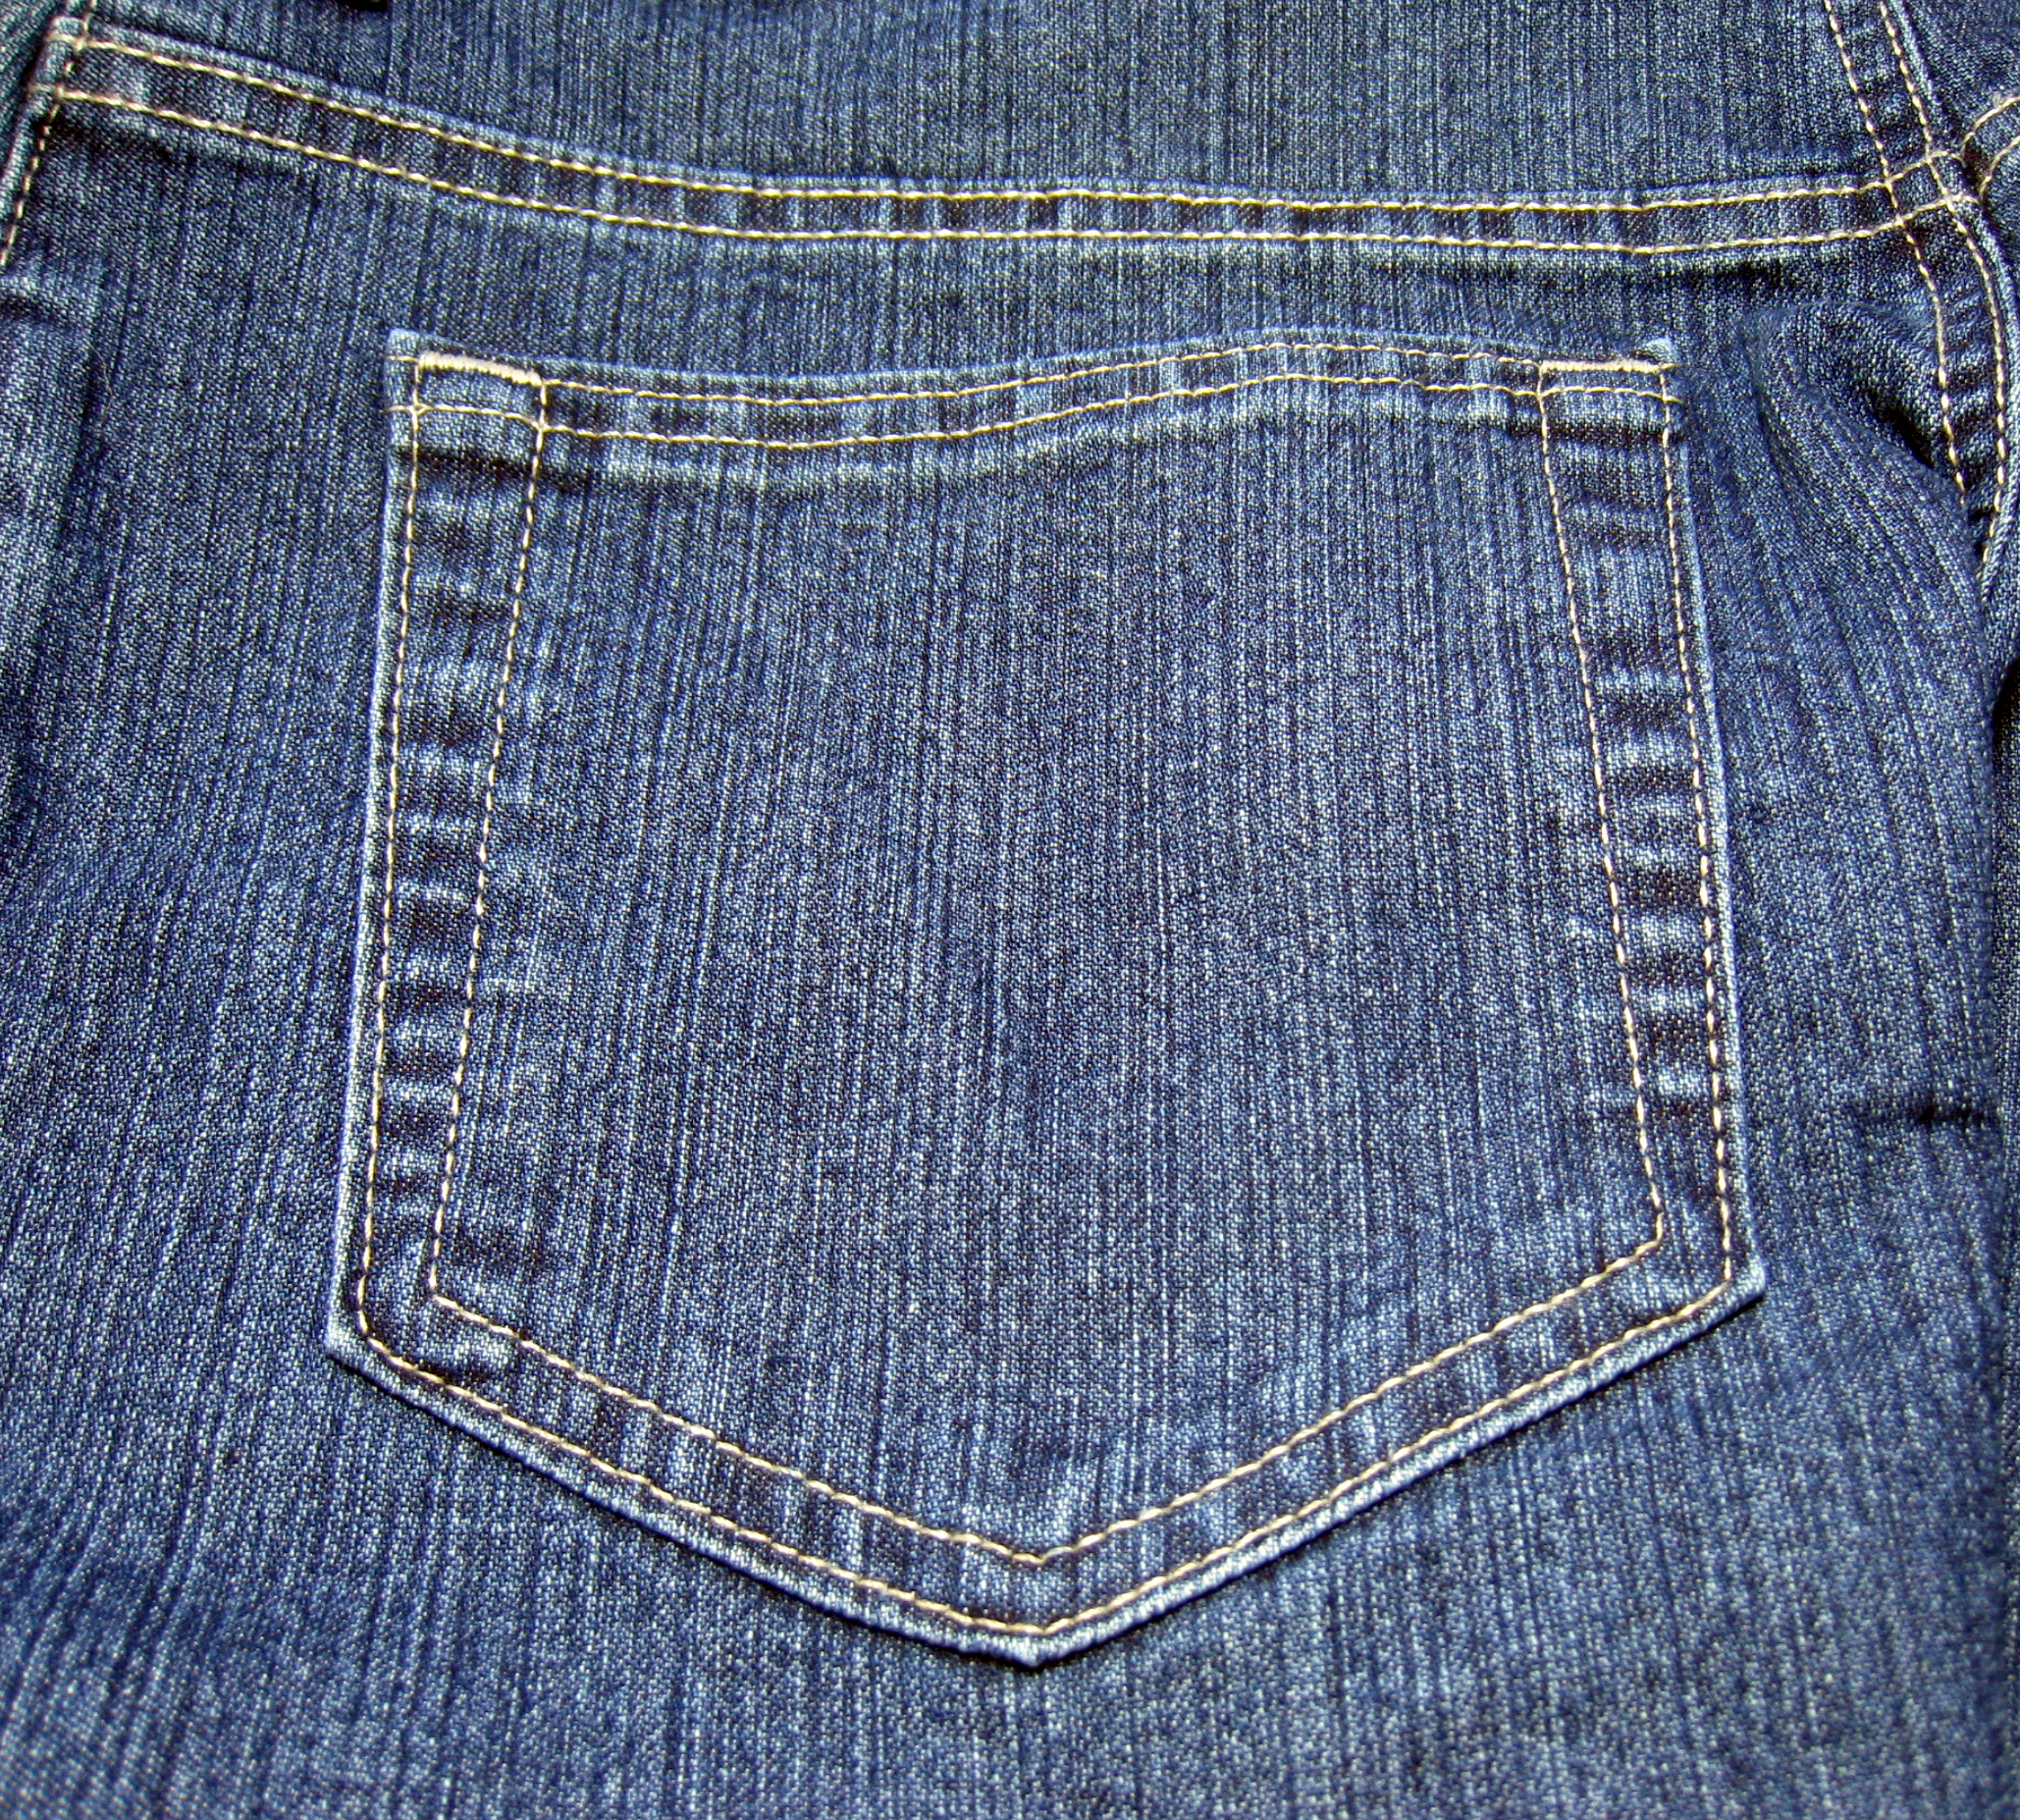 File:Jeans pocket back.jpg